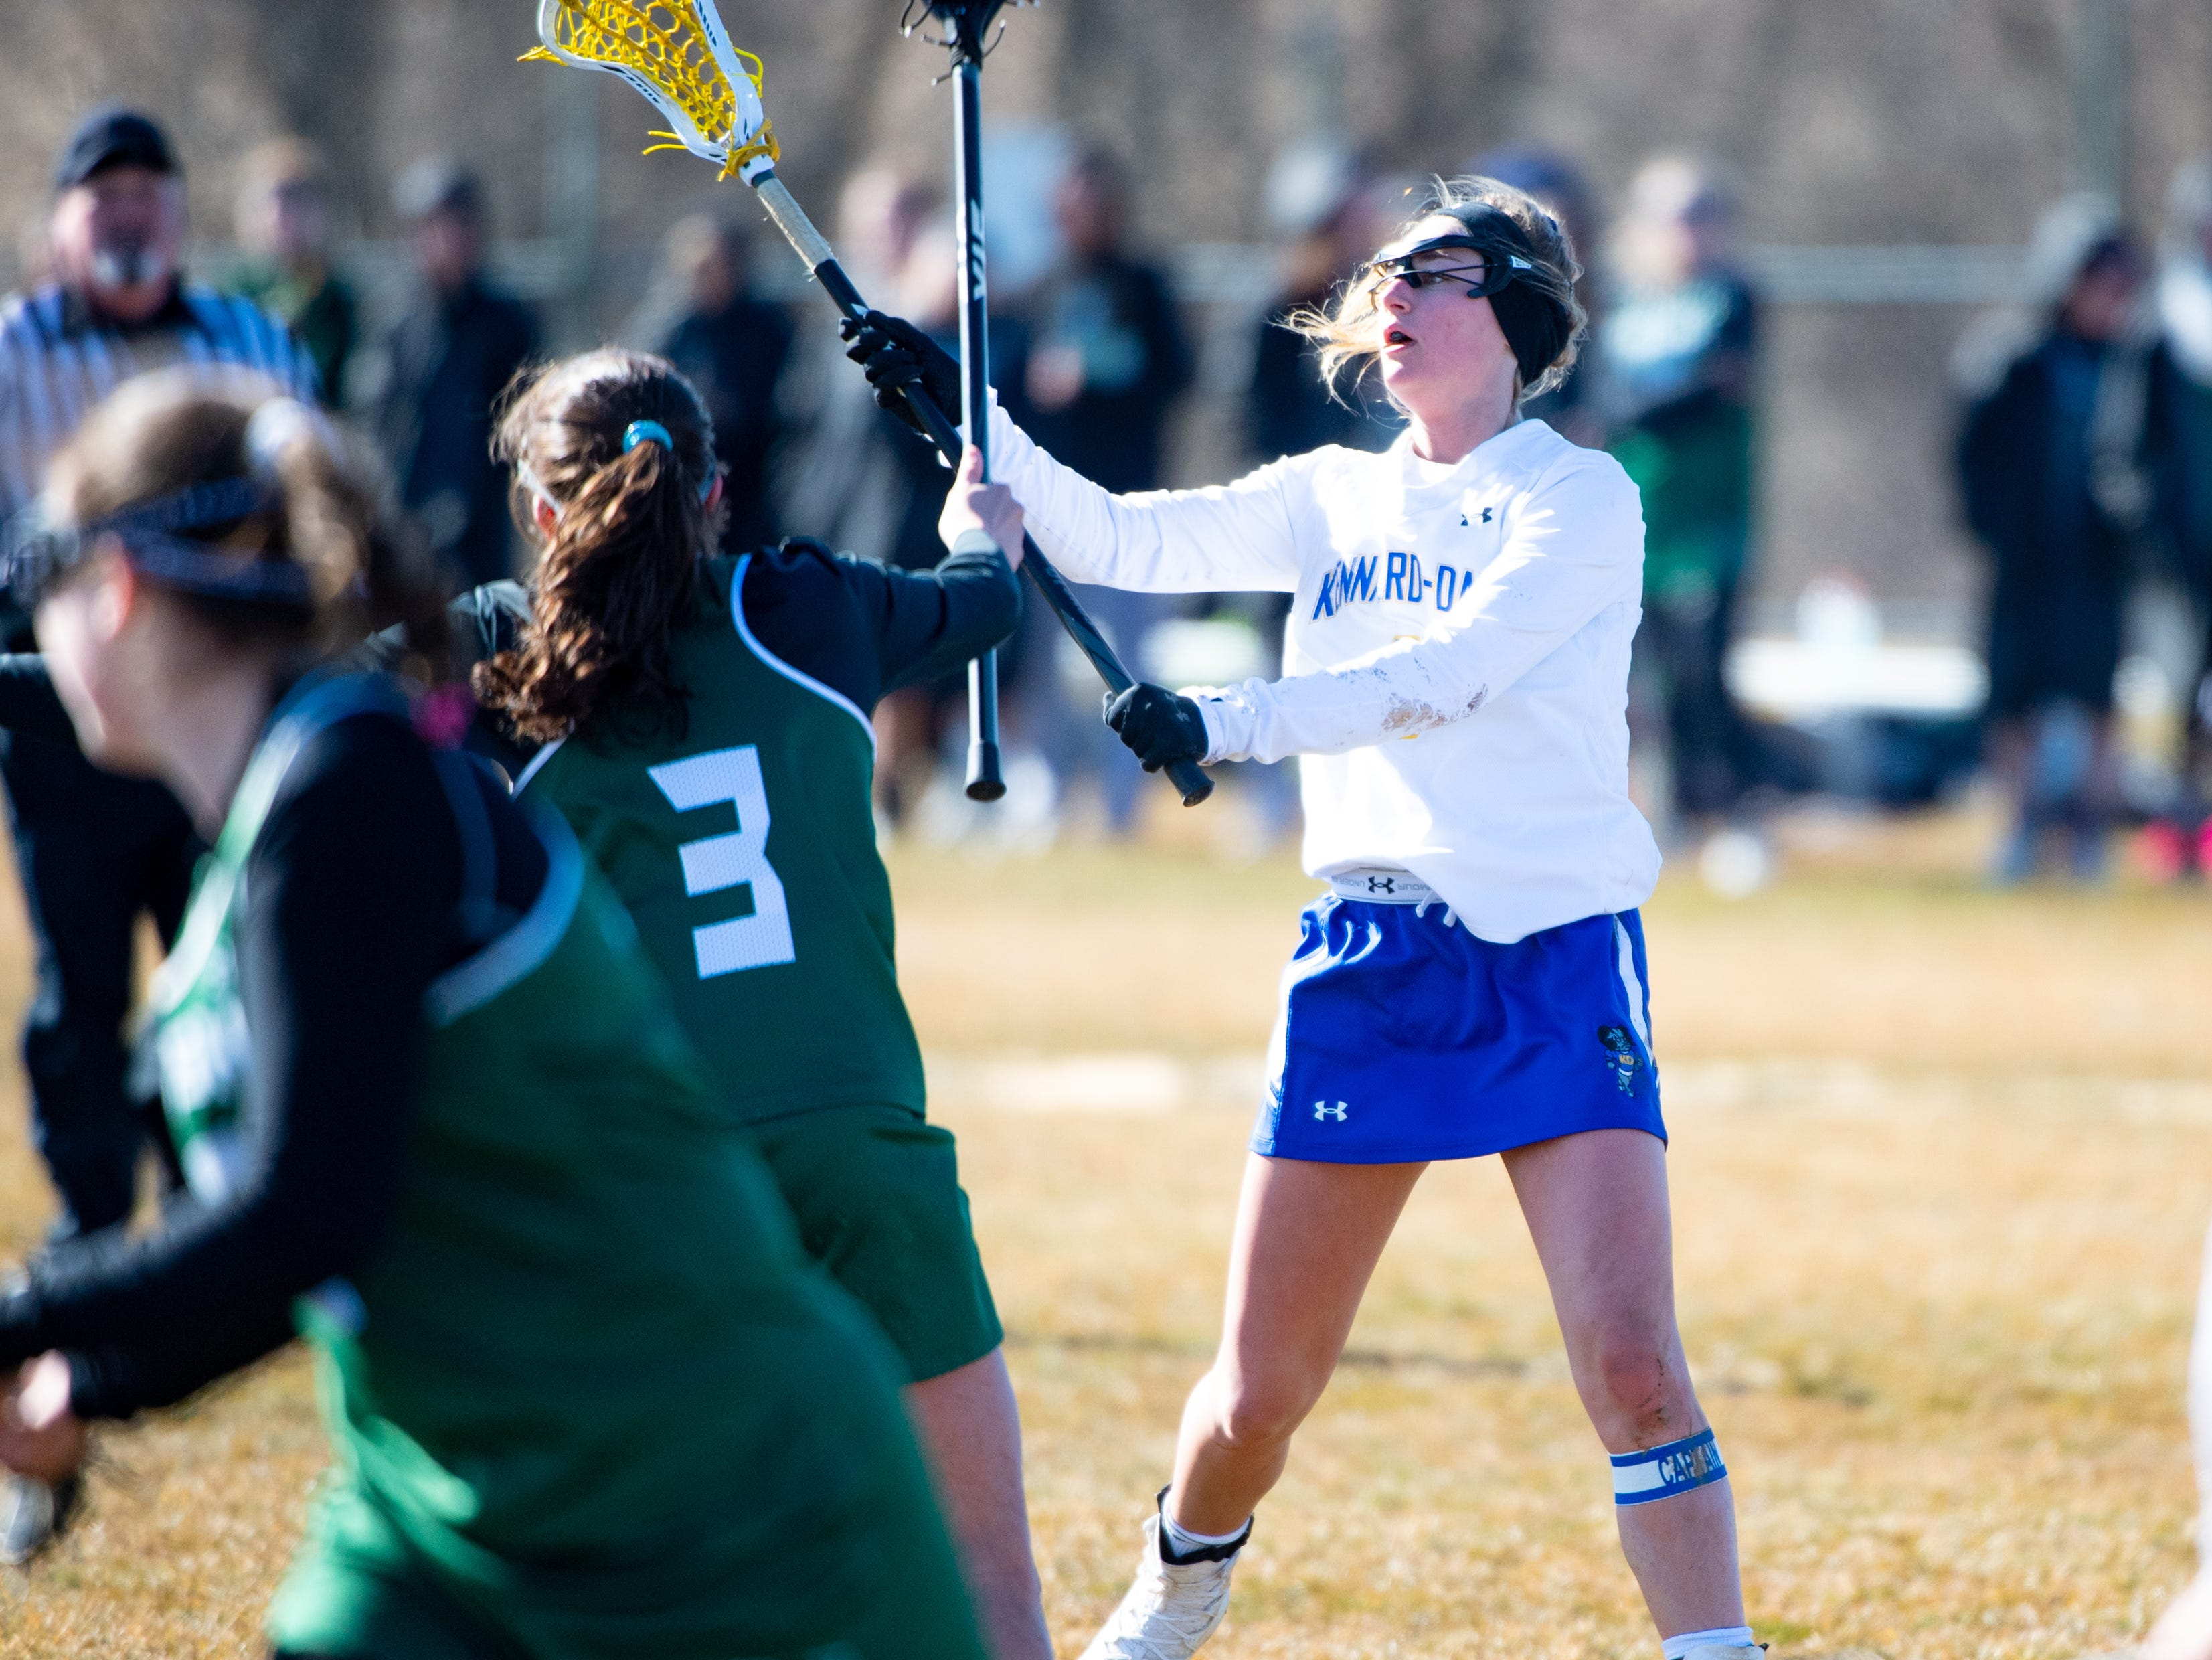 Megan Halczuk (9) throws the ball across field during the girls' lacrosse game between Kennard-Dale and York Catholic, March 26, 2019 at Kennard-Dale High School. The Fighting Irish defeated the Rams 10 to 9.